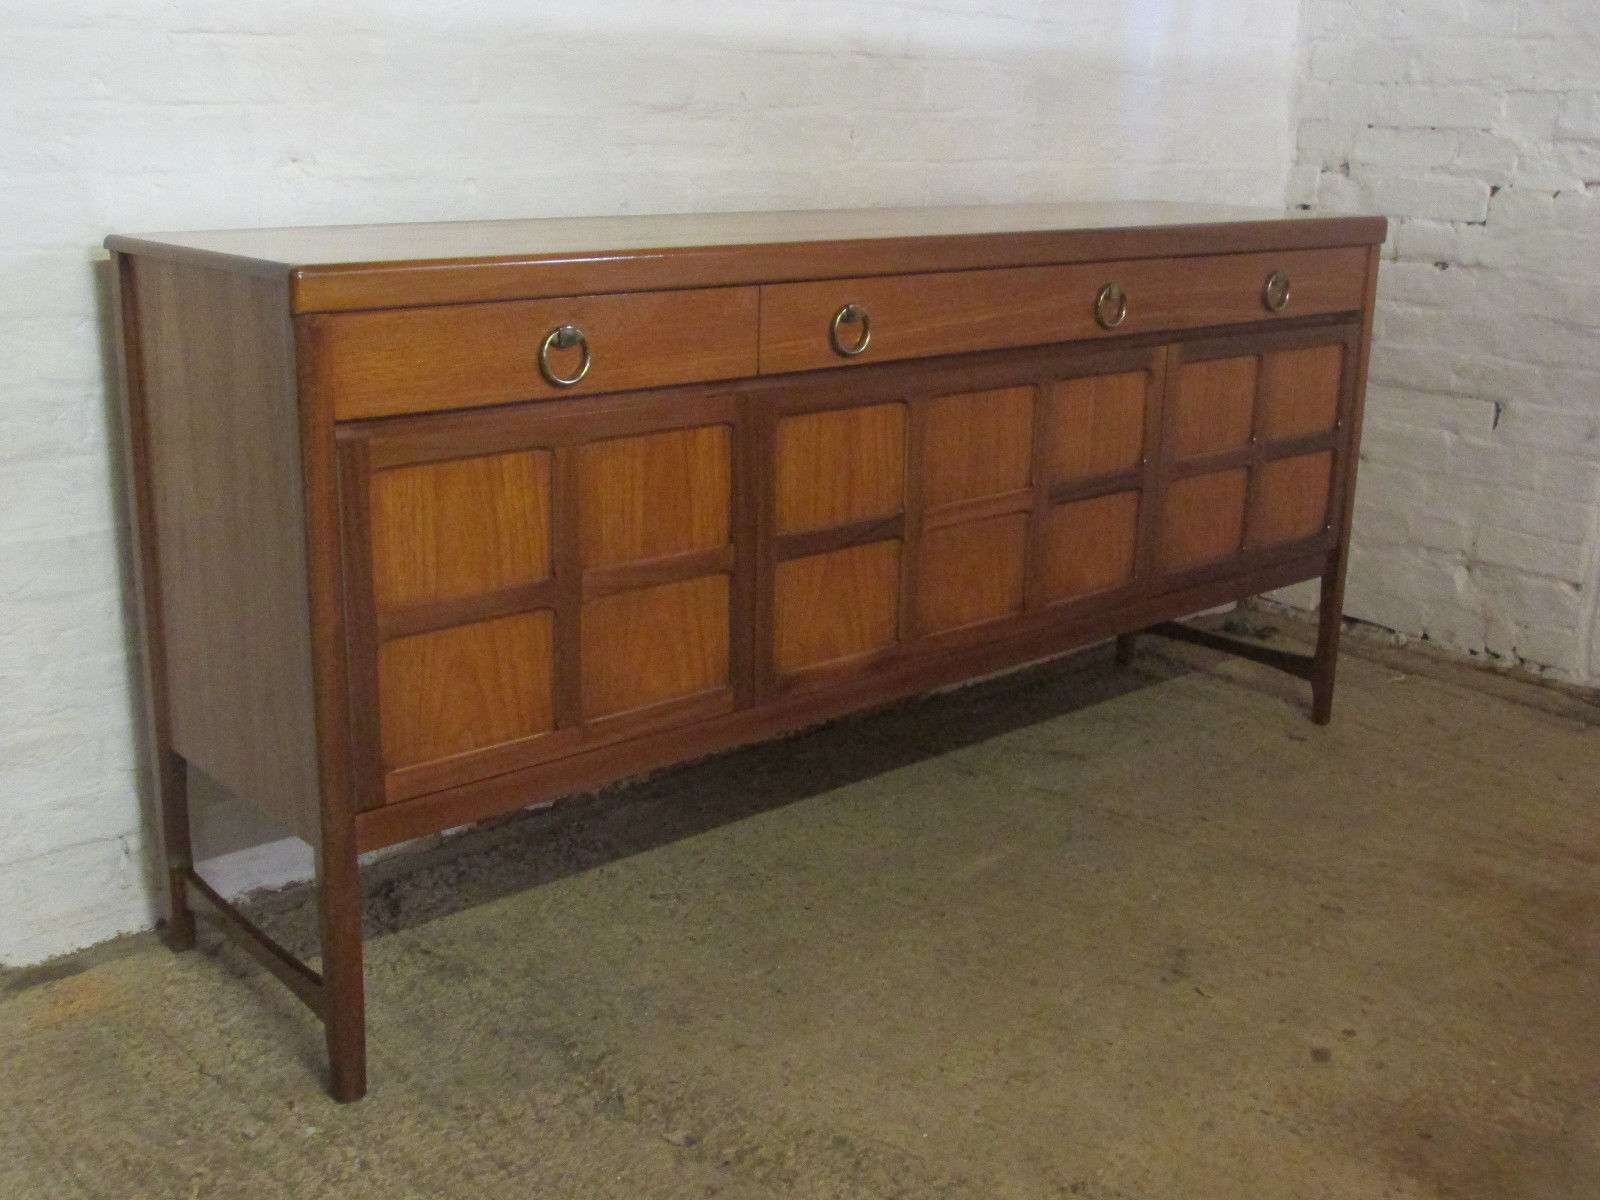 Retro 1960S/1970S Nathan Large Six Foot Teak Sideboard With In 6 Foot Sideboards (View 9 of 20)